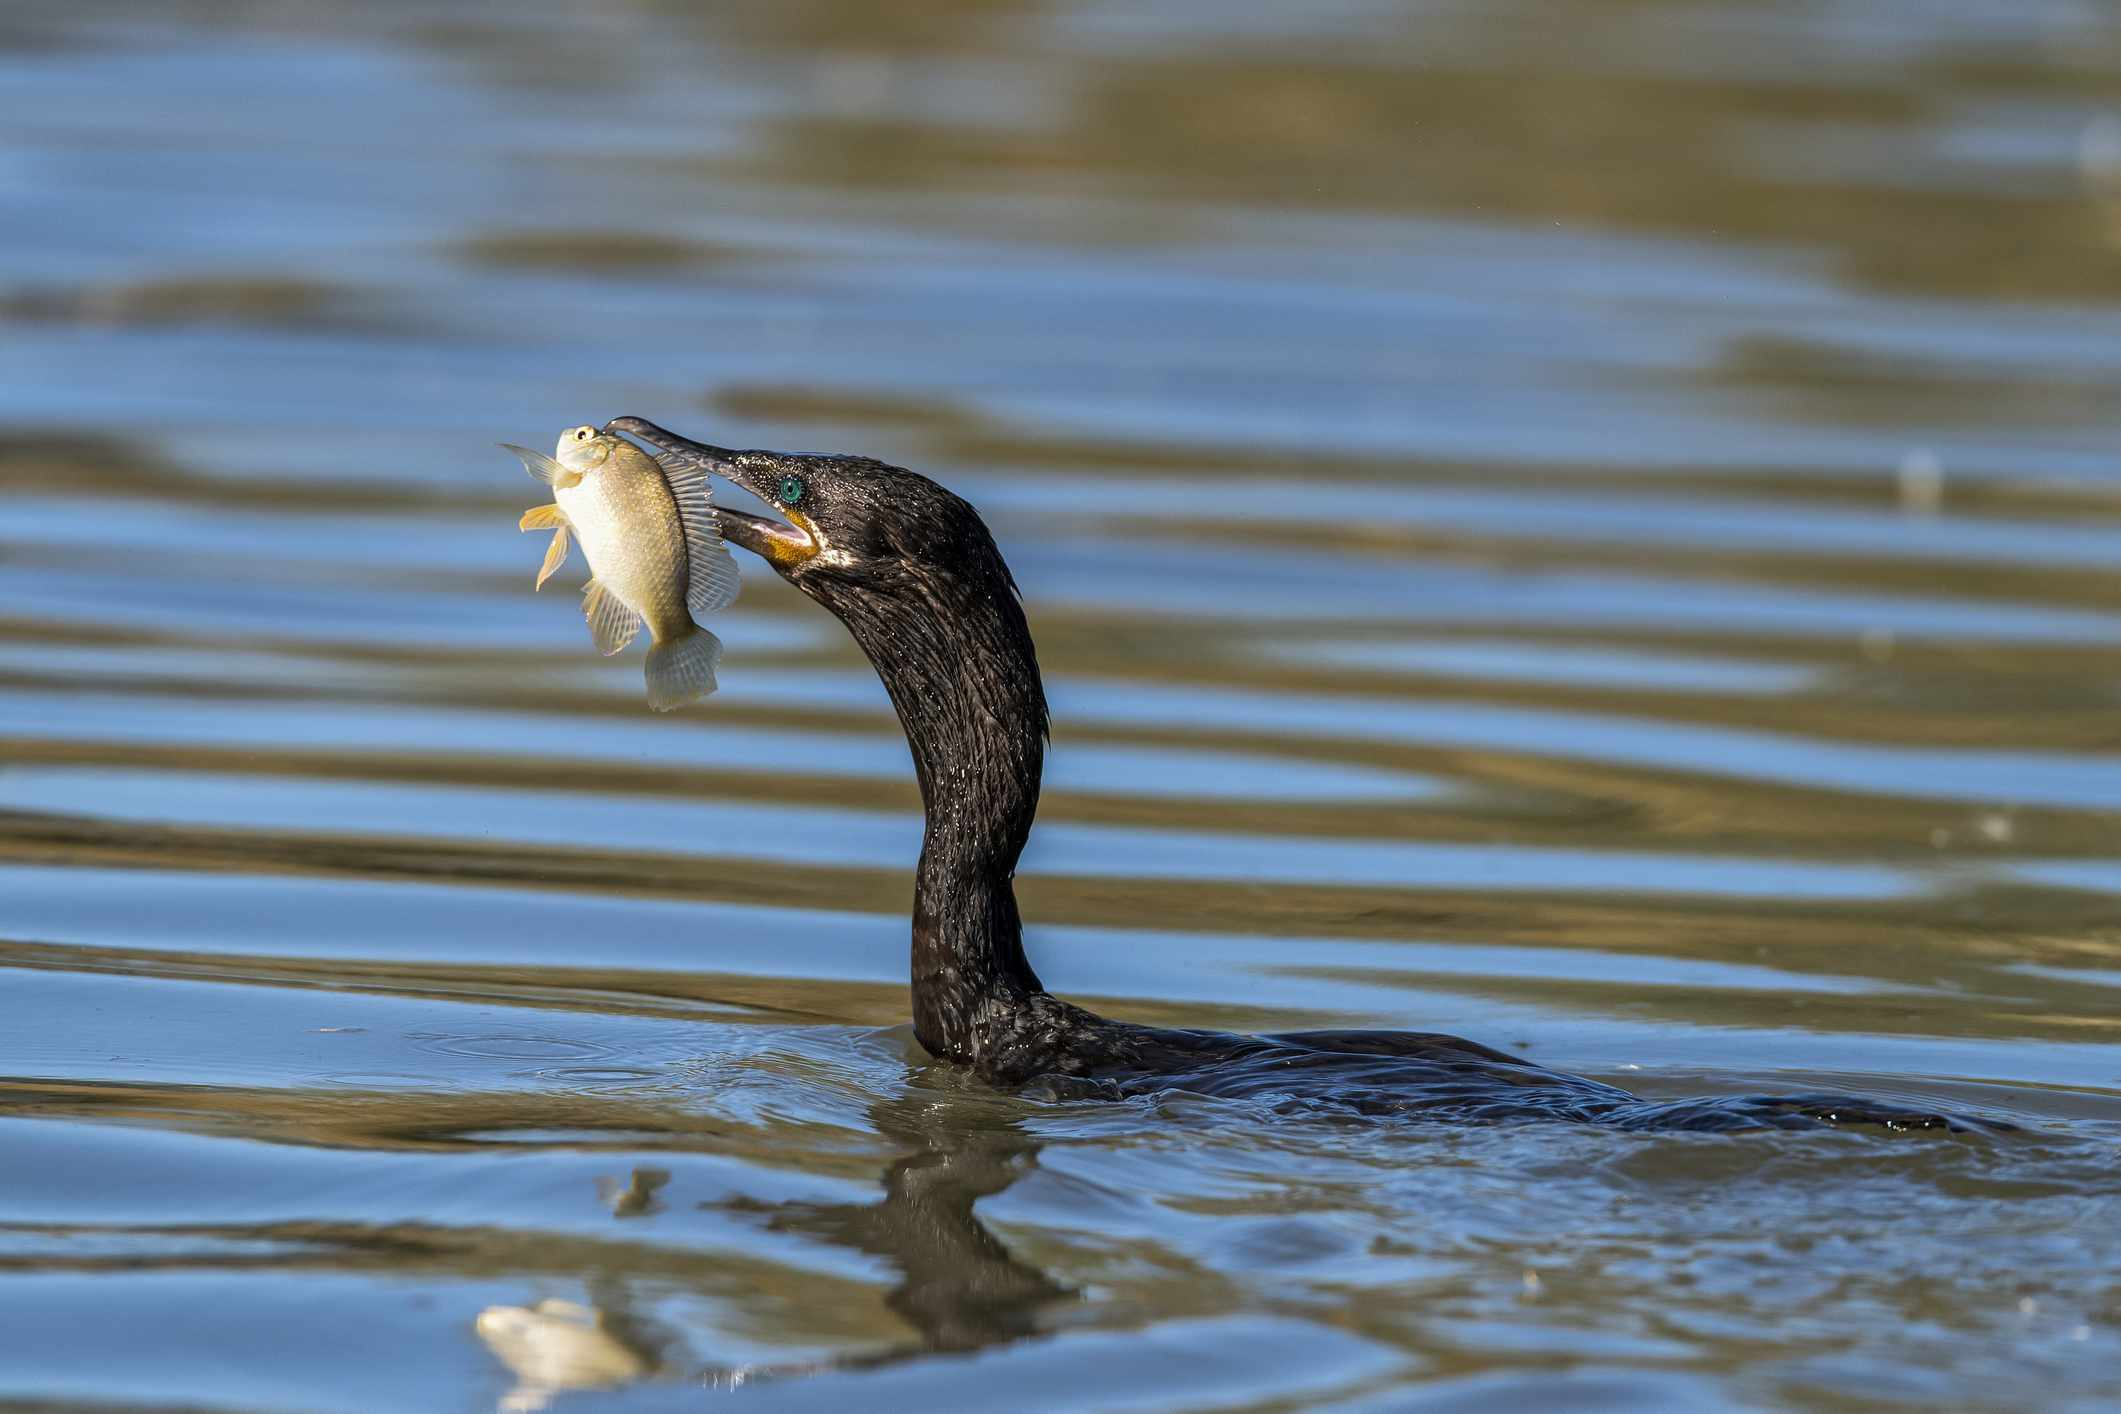 Cormorant (Phalacrocoracidae) bird with fish in mouth, Riparian Preserve at Water Ranch